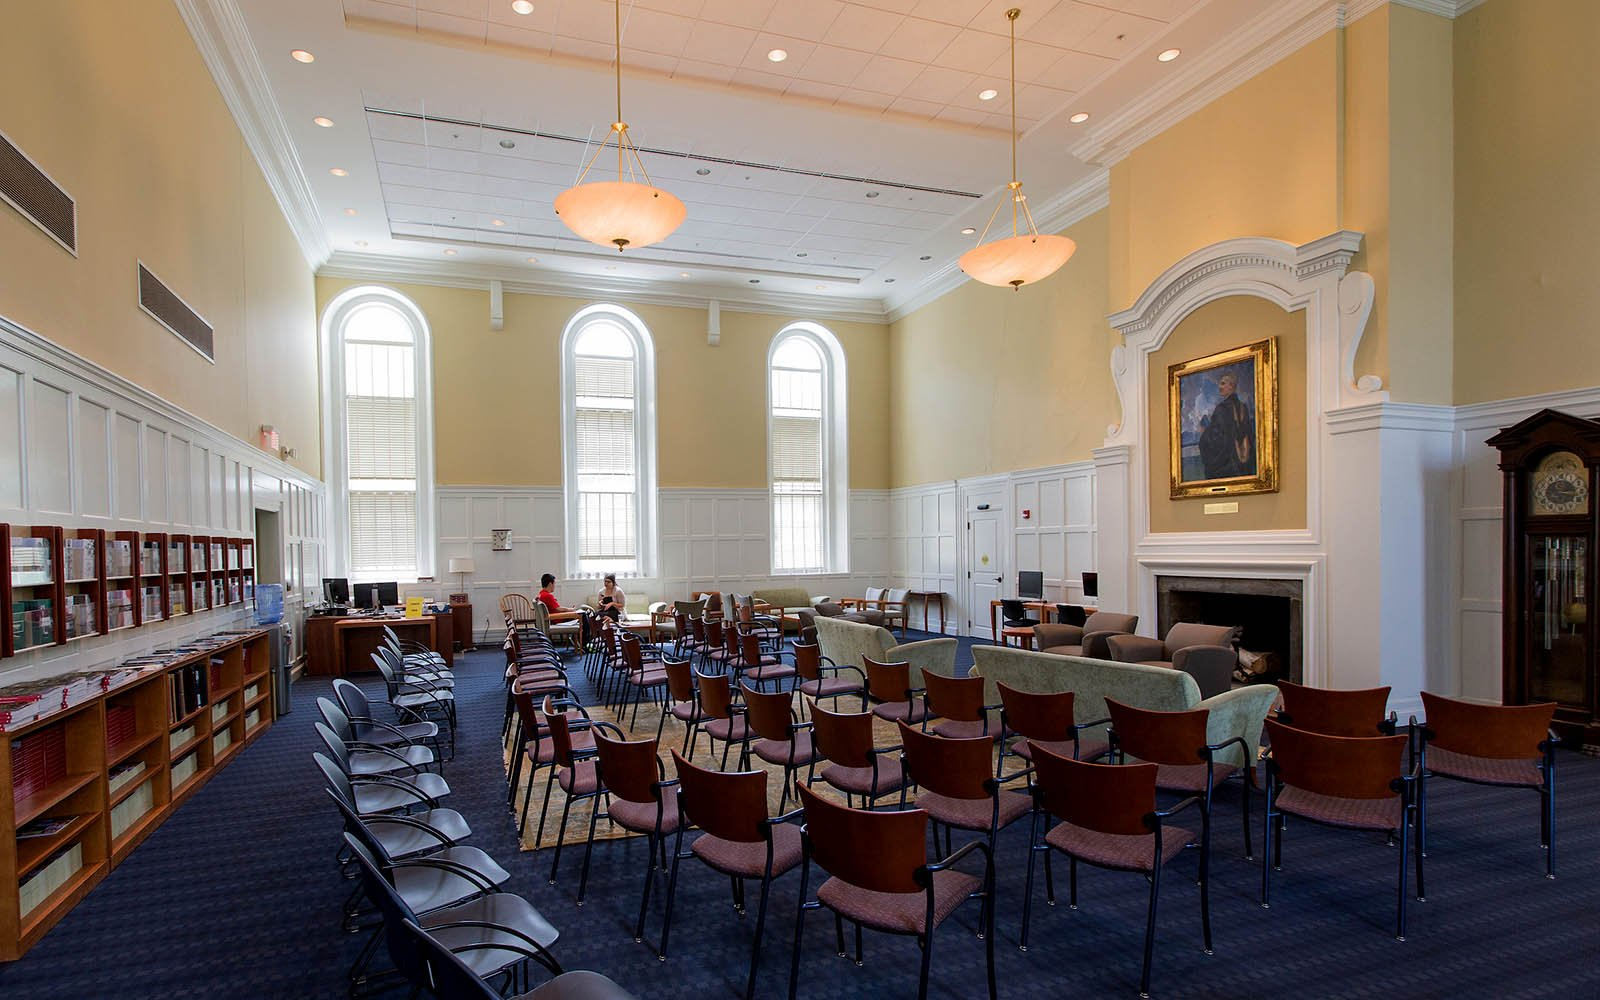 Large room with chairs used by Admissions